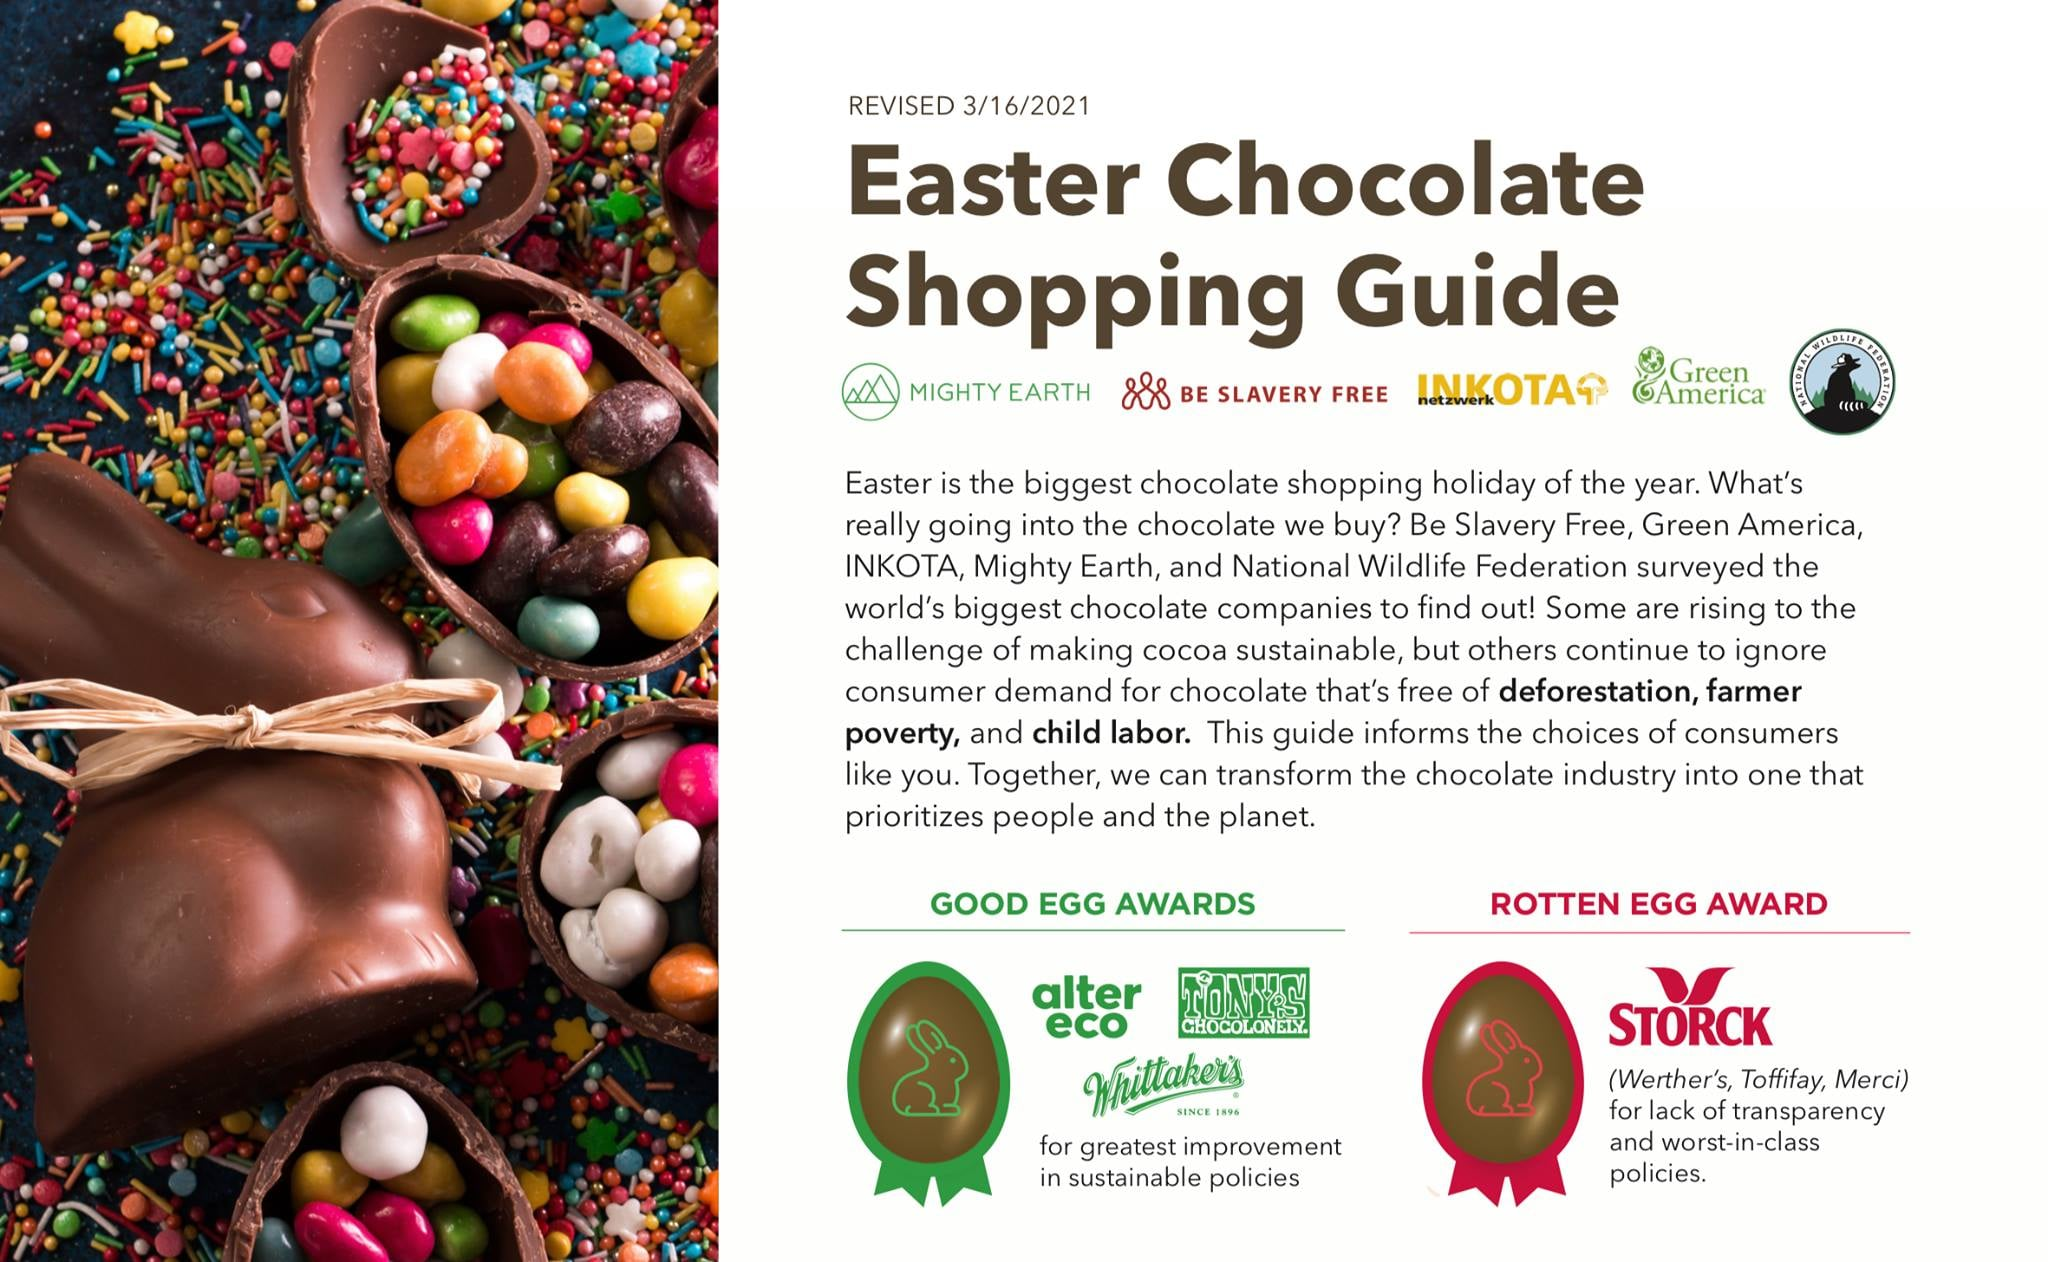 Easter Chocolate Scorecard Launched in Ghana